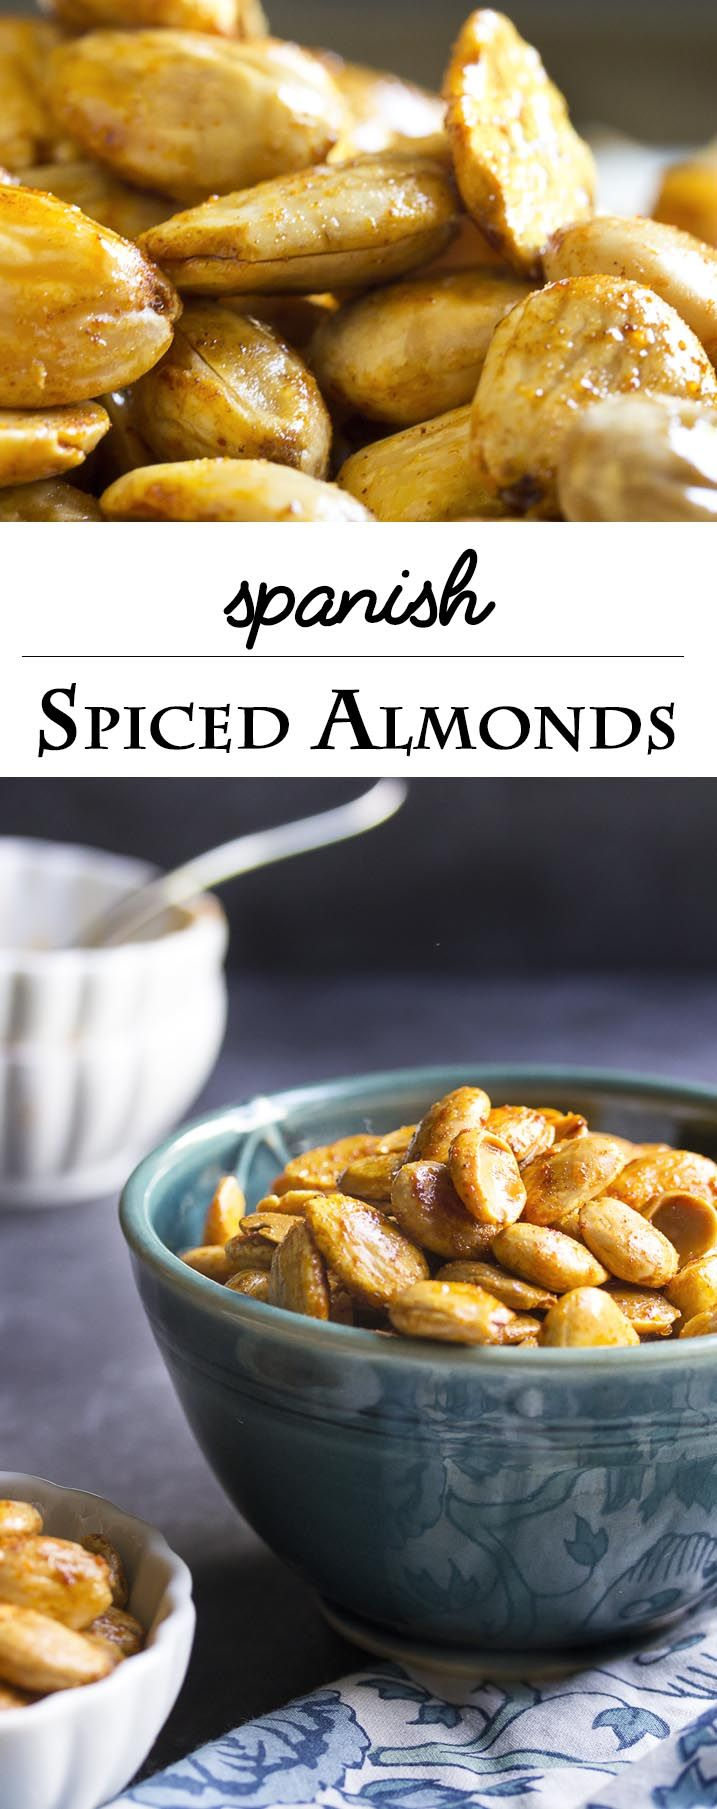 Spanish Spiced Almonds - Creamy, sweet marcona almonds are toasted and tossed in a flavorful paprika-spiked spice blend in this recipe for Spanish spiced almonds.   justalittlebitofbacon.com